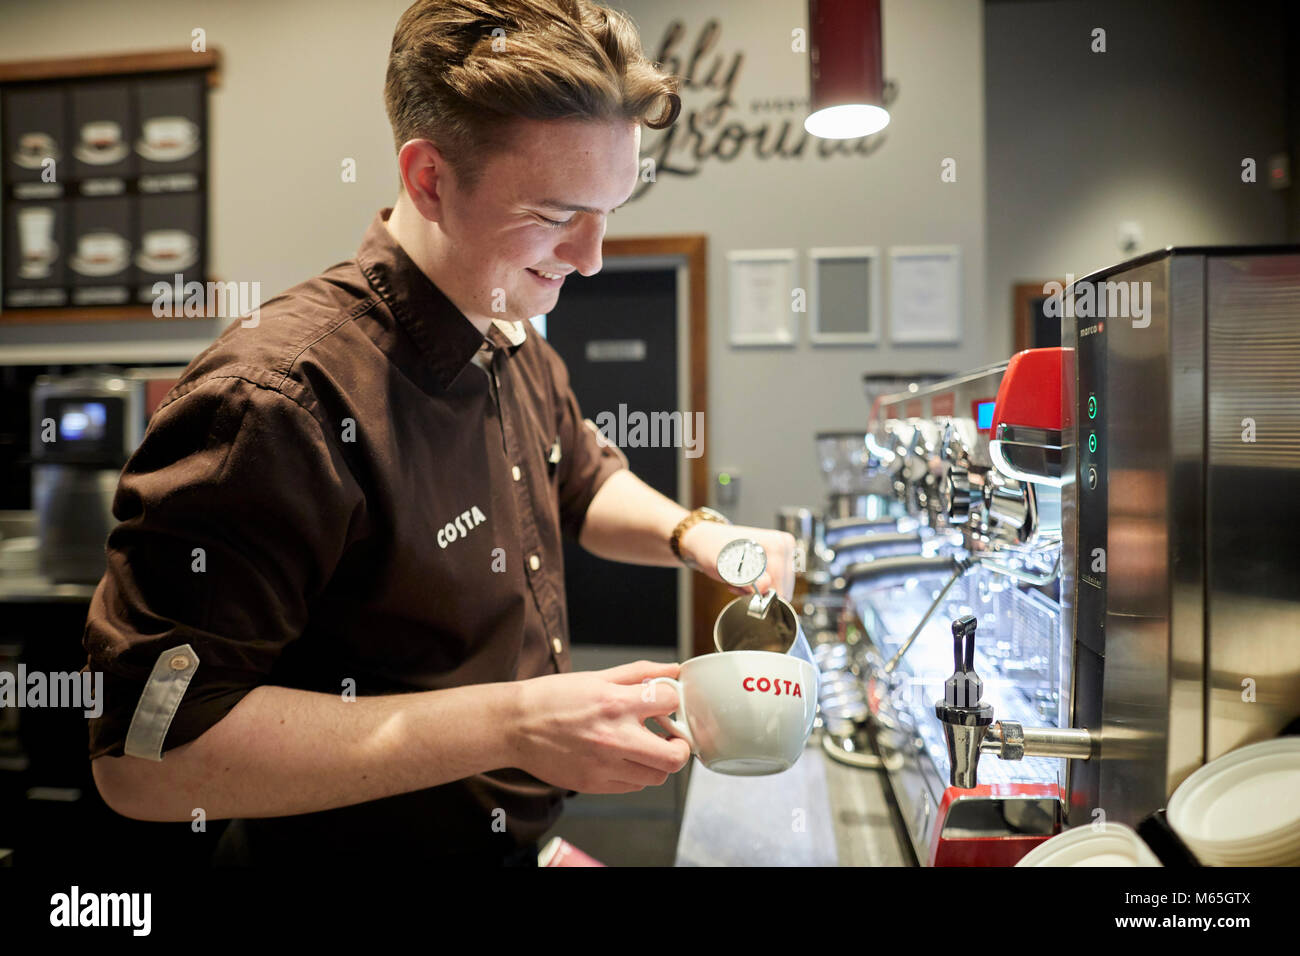 Costa coffee shop worker in store - Stock Image